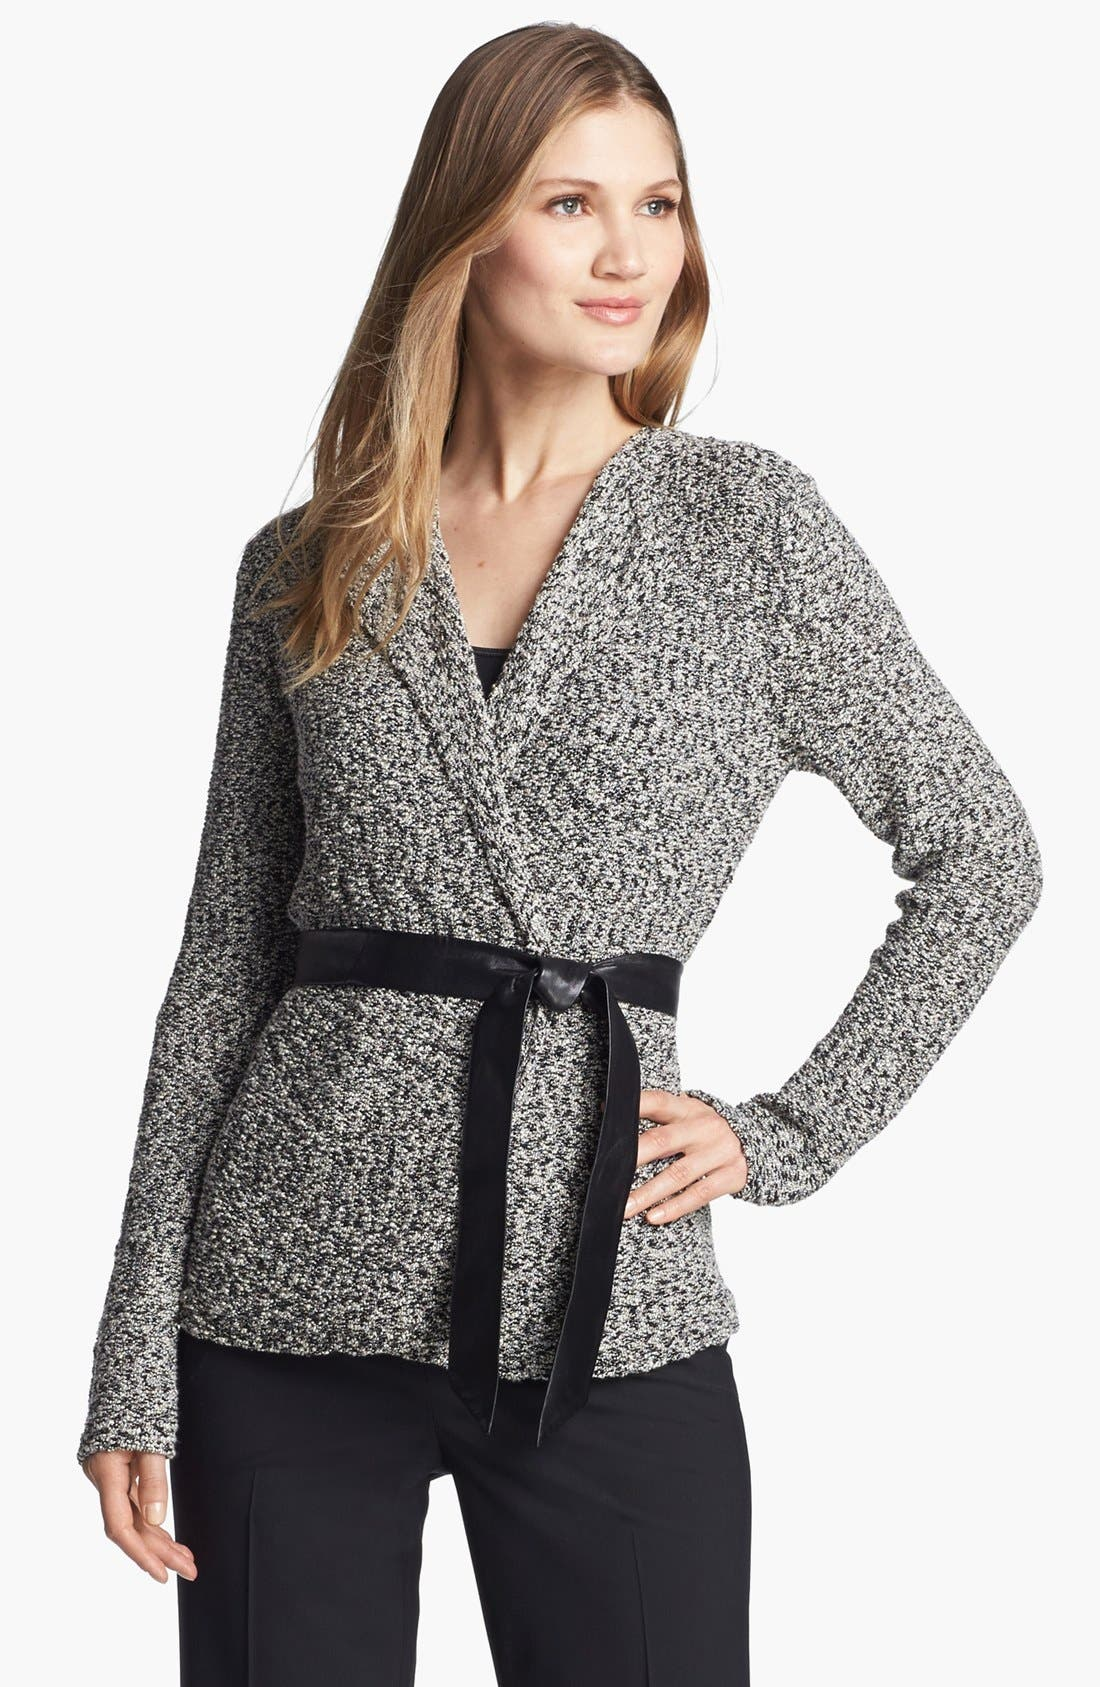 'Gallo' Belted Sweater Jacket,                             Main thumbnail 1, color,                             001